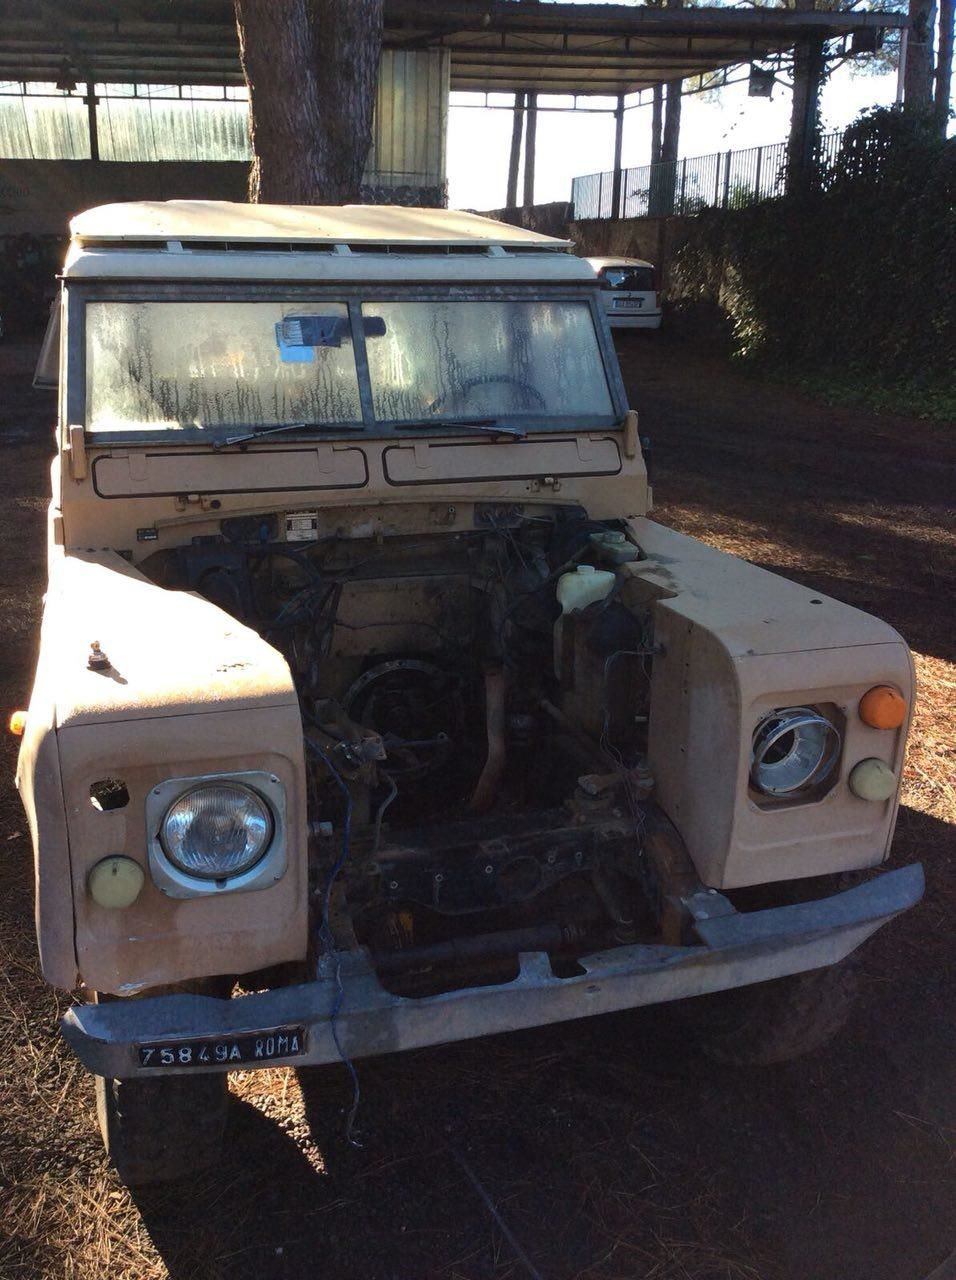 Defender Land Rover Series 109 Engine Displacement 2286 Diesel 44 Clutch Straps Water Pump Radiator Air Conditioning Fuel Gaskets O Ring Distribution Leaf Springs Shock Absorbers Break System